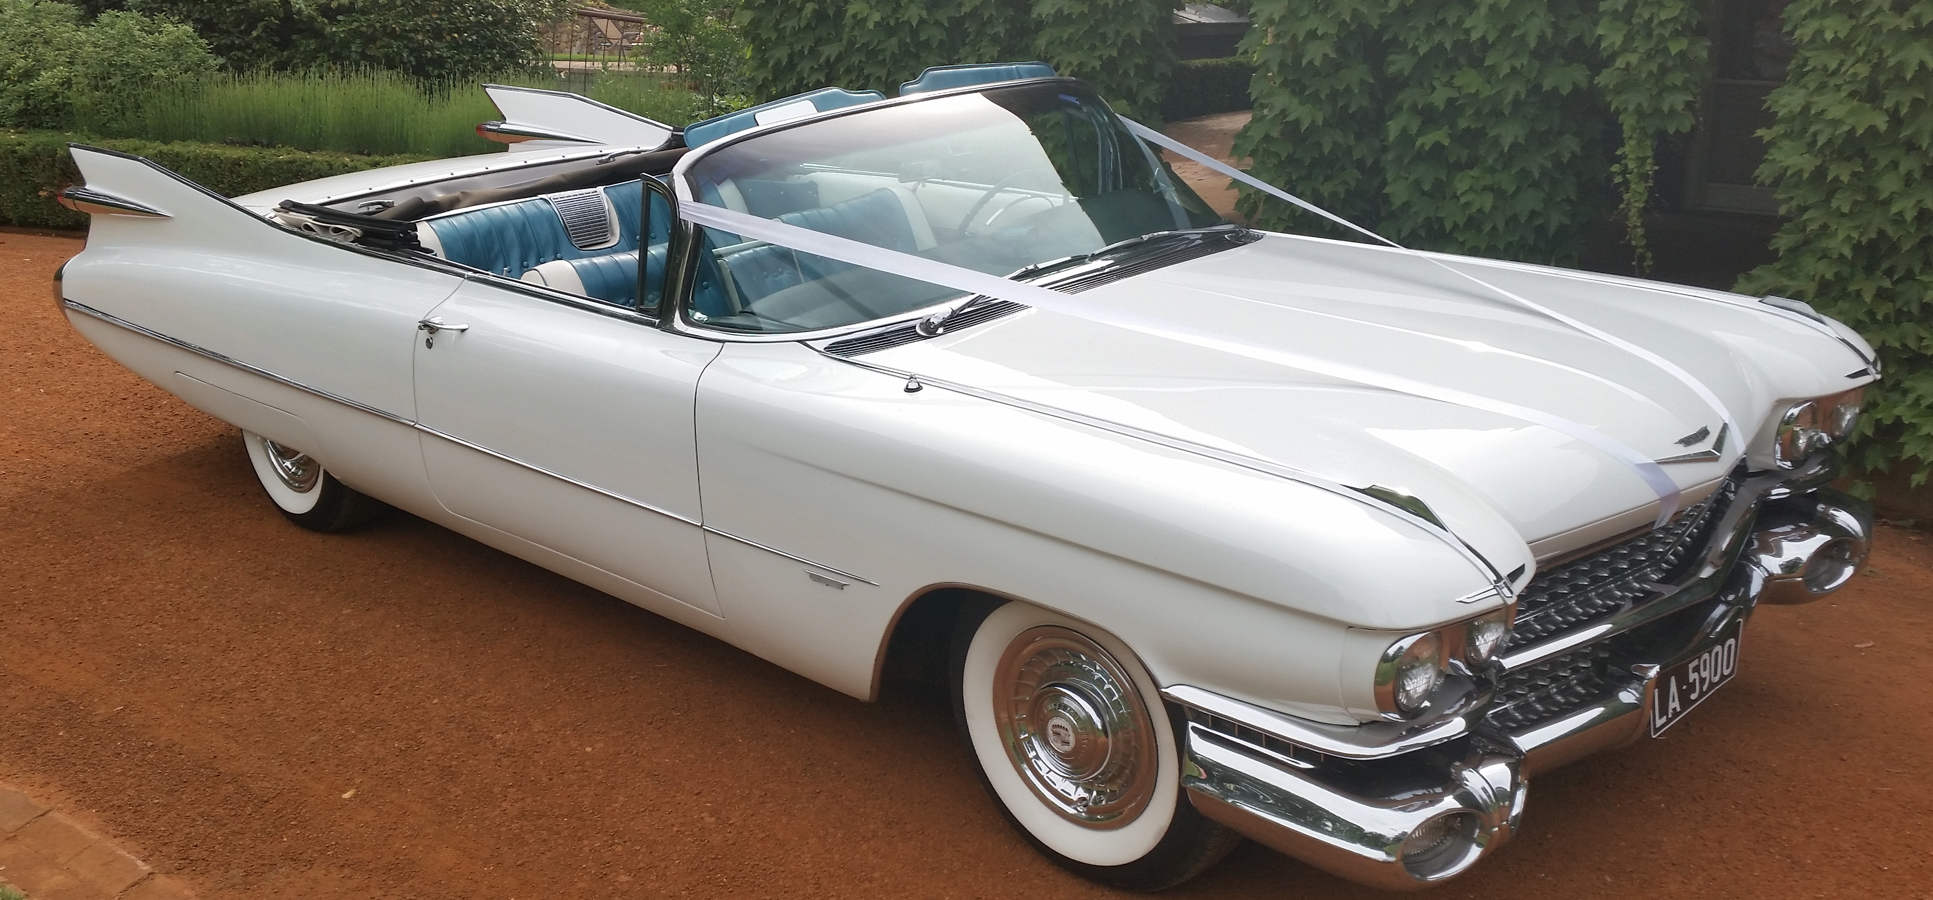 Cadillac Convertible Wedding